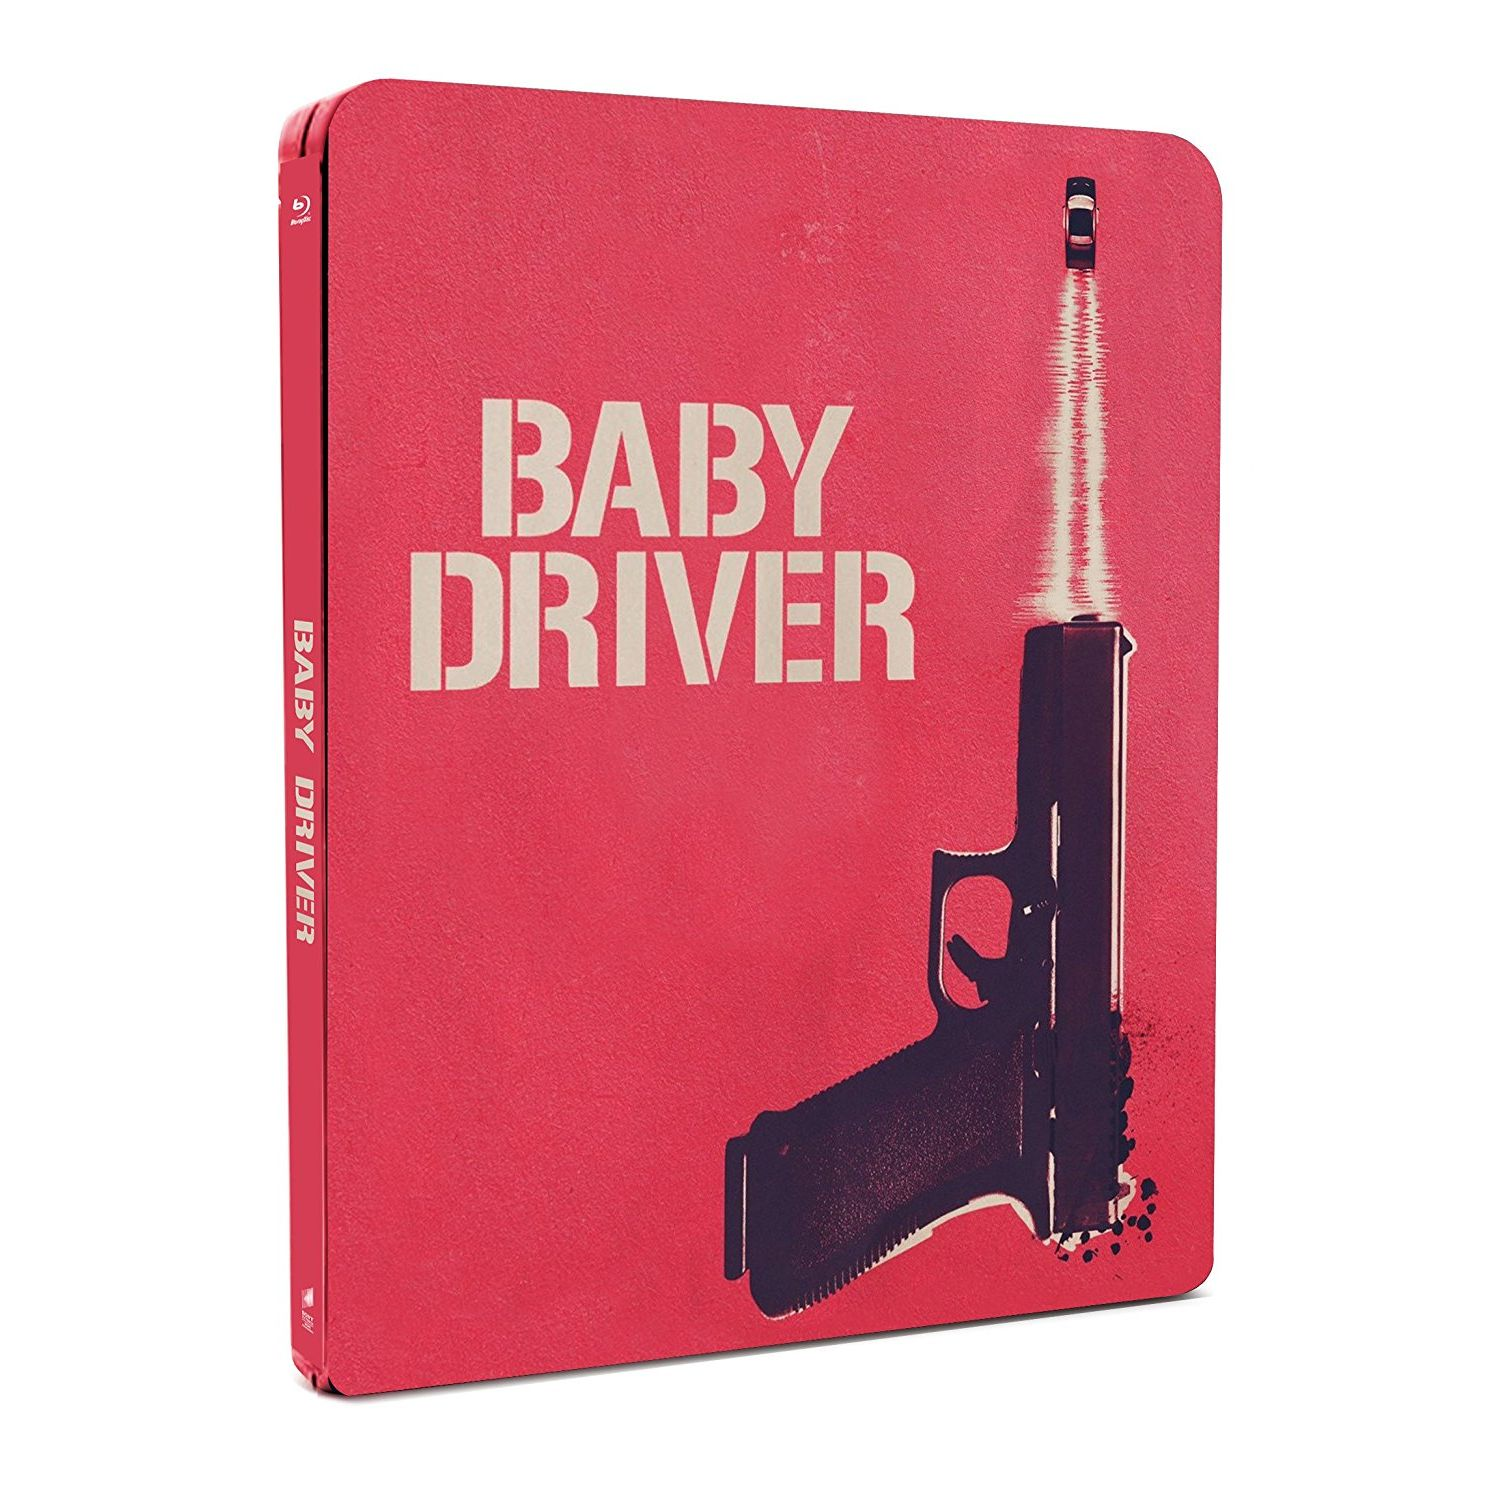 BABY DRIVER Limited Edition Steelbook (BLU-RAY)